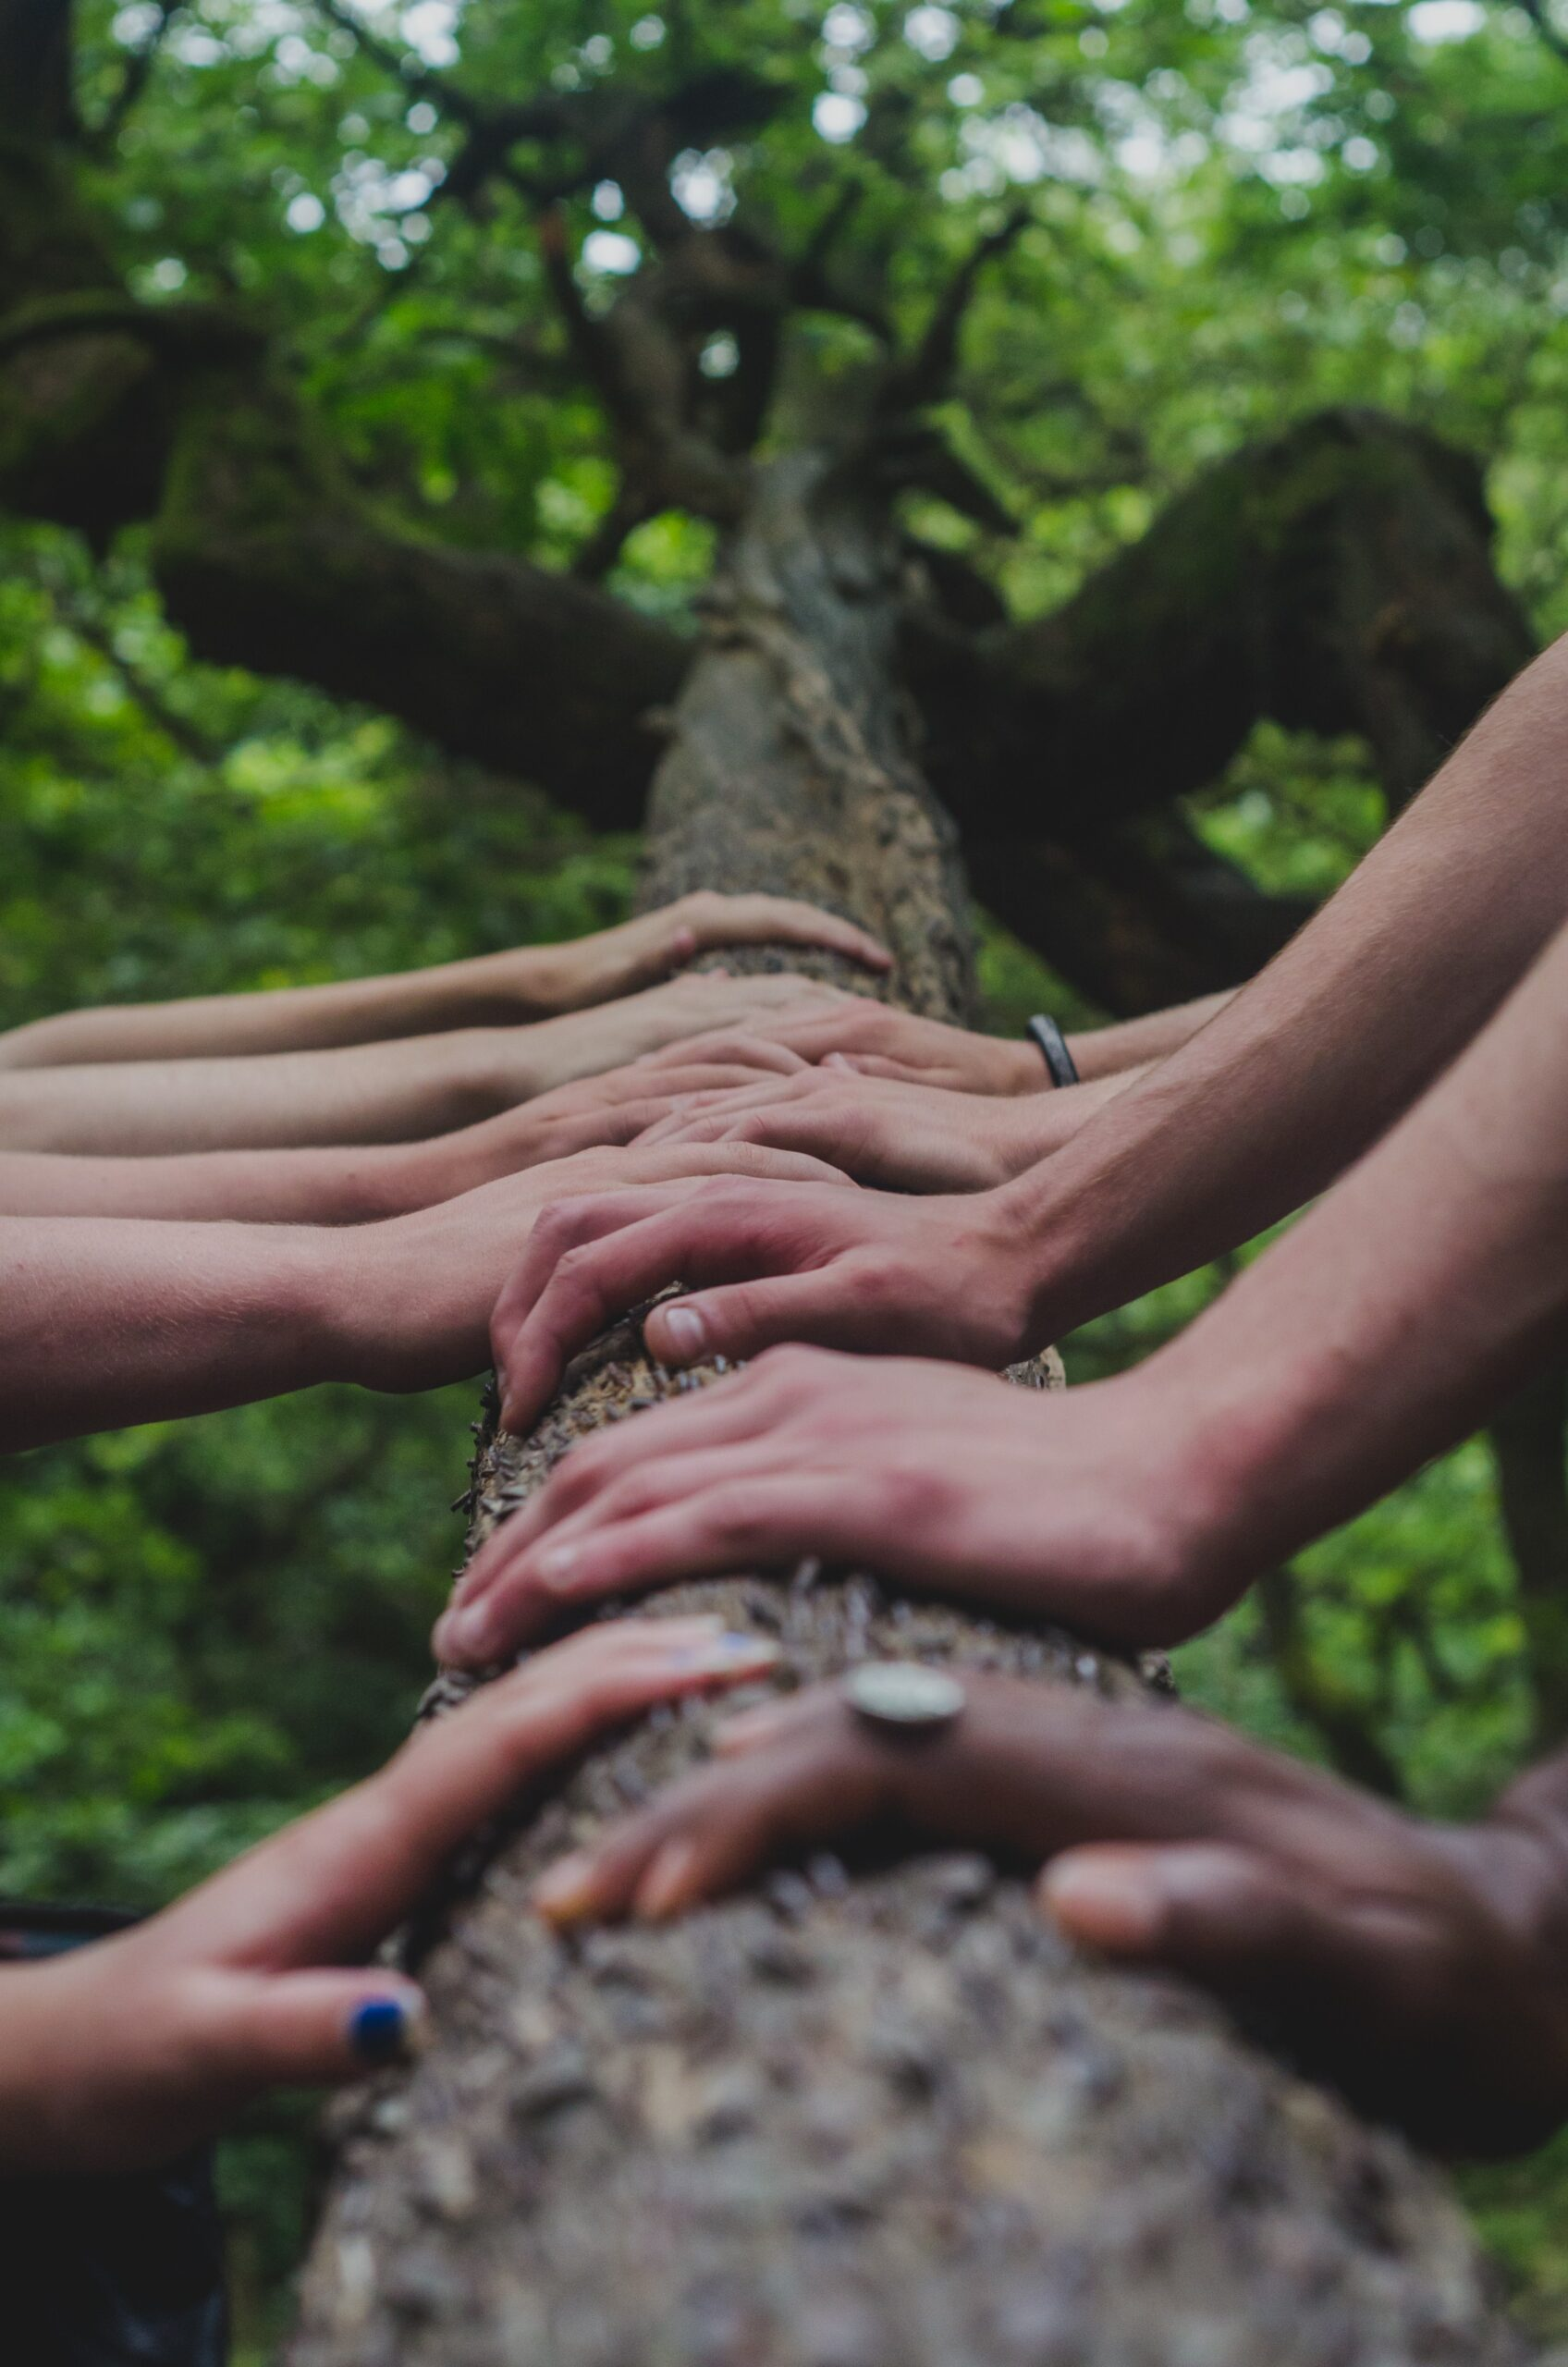 179-The Power of Peer Support and Lived Experience